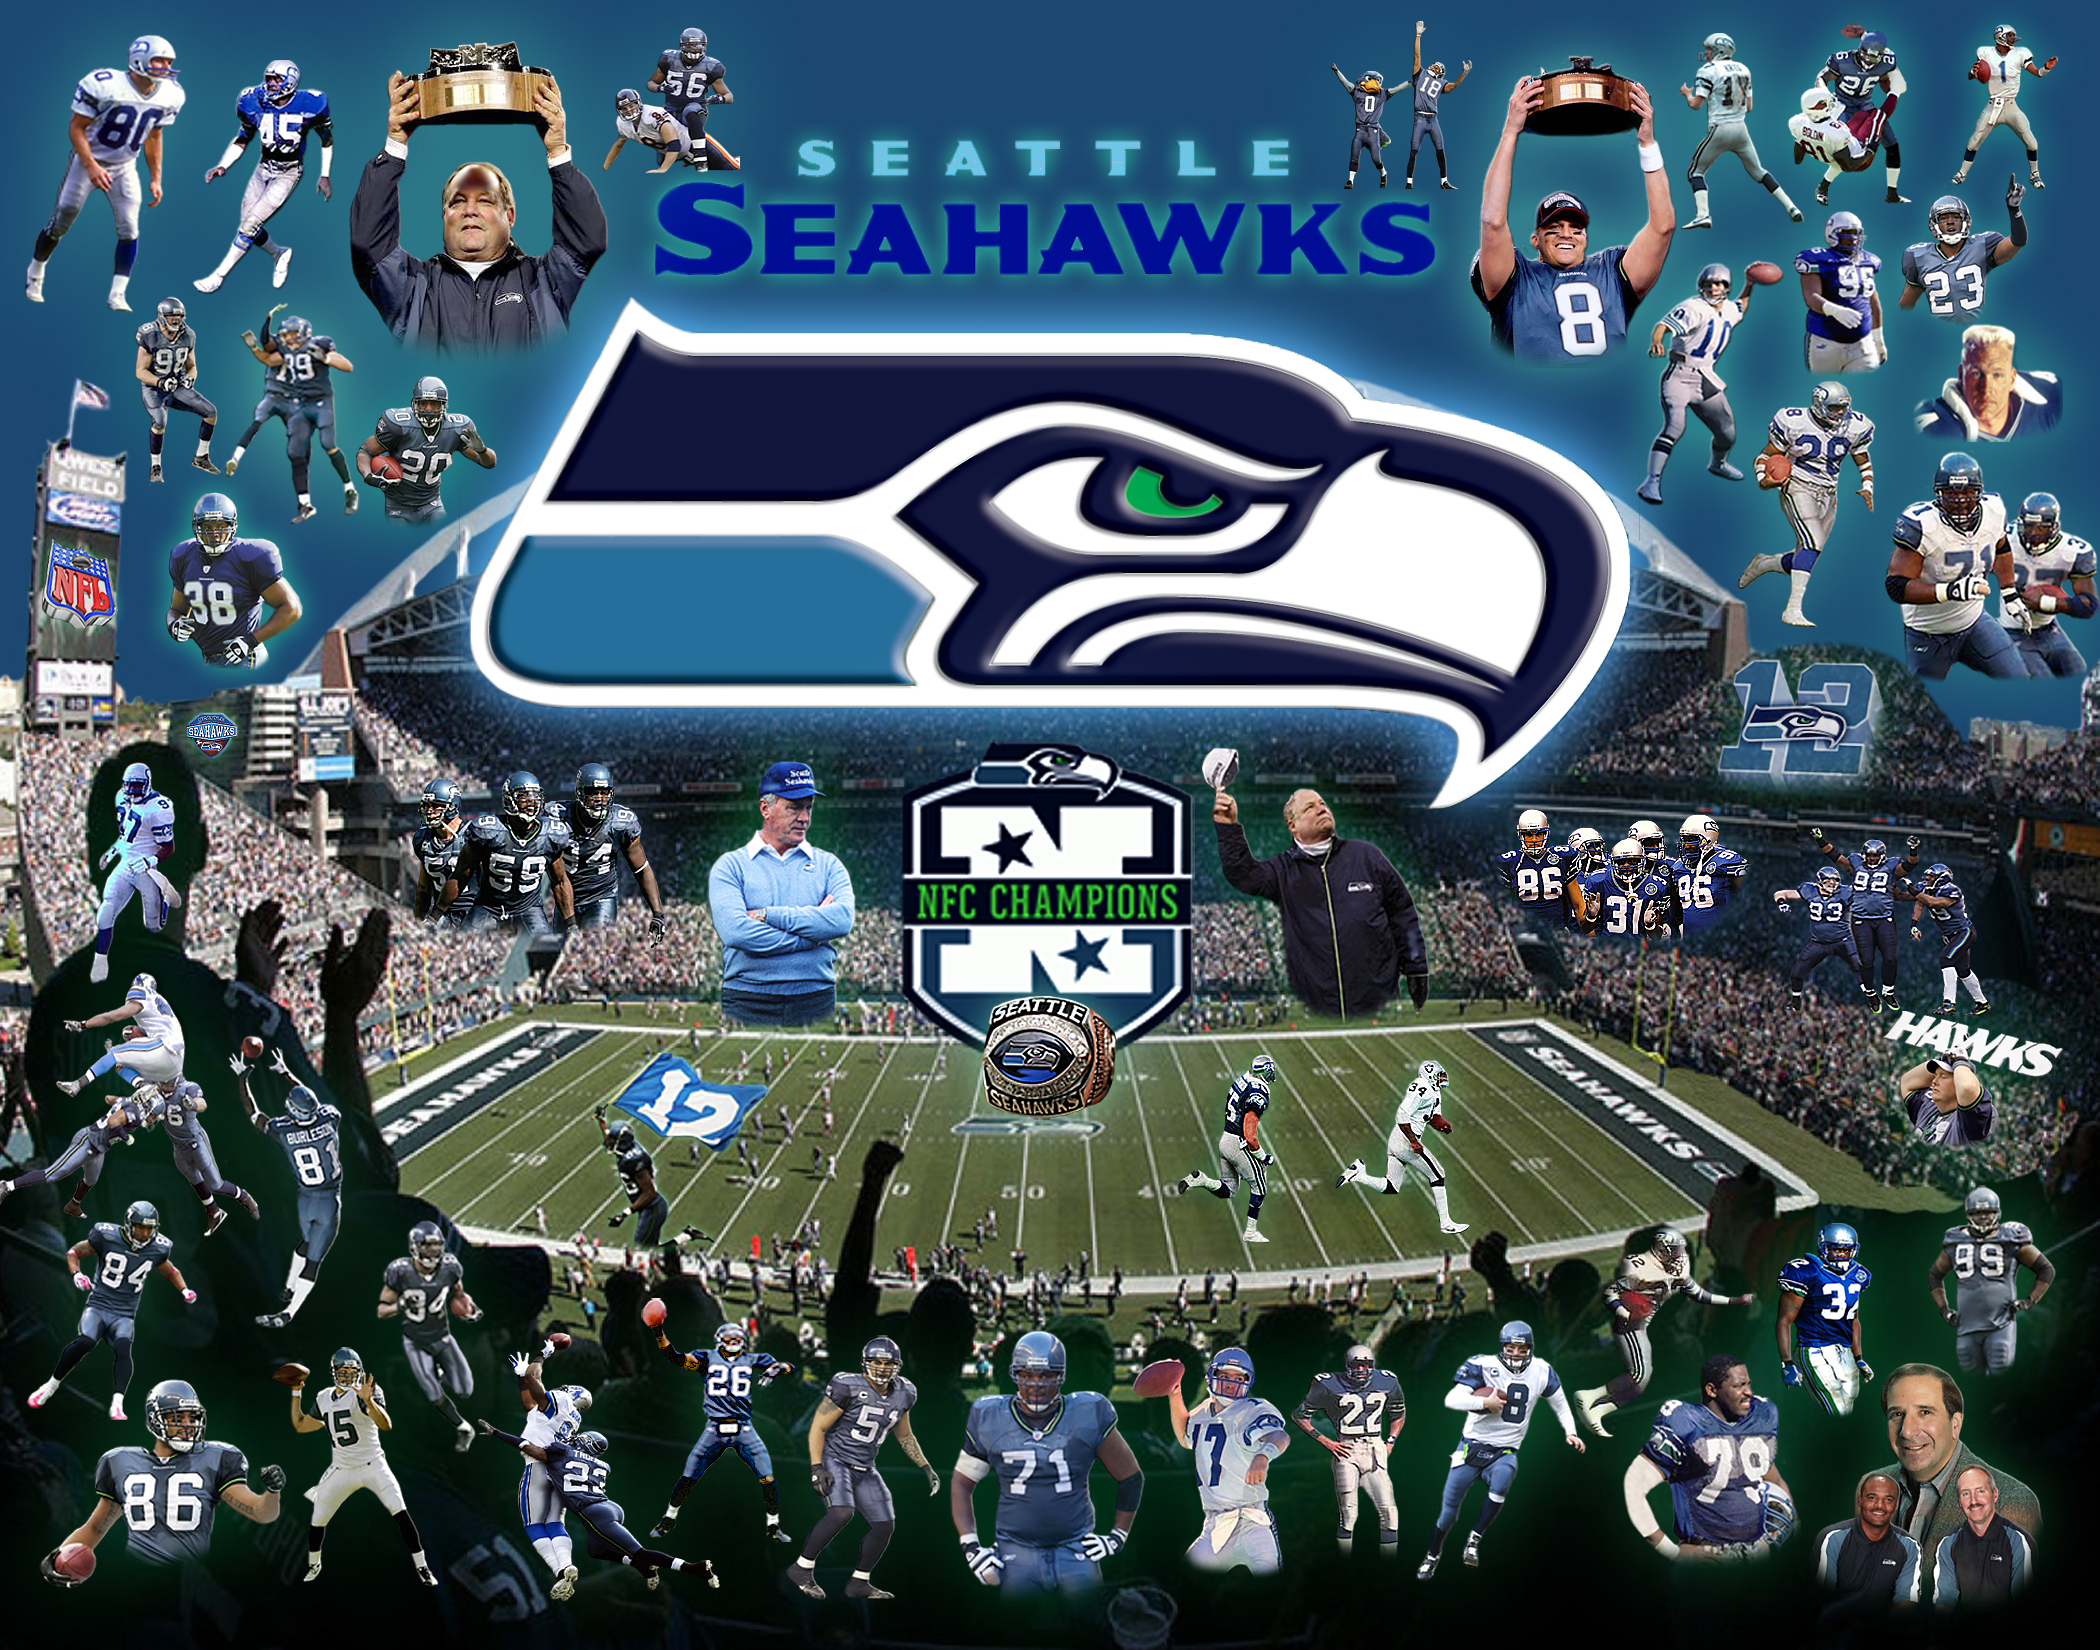 Seattle Images SEAHAWKS HD Wallpaper And Background Photos